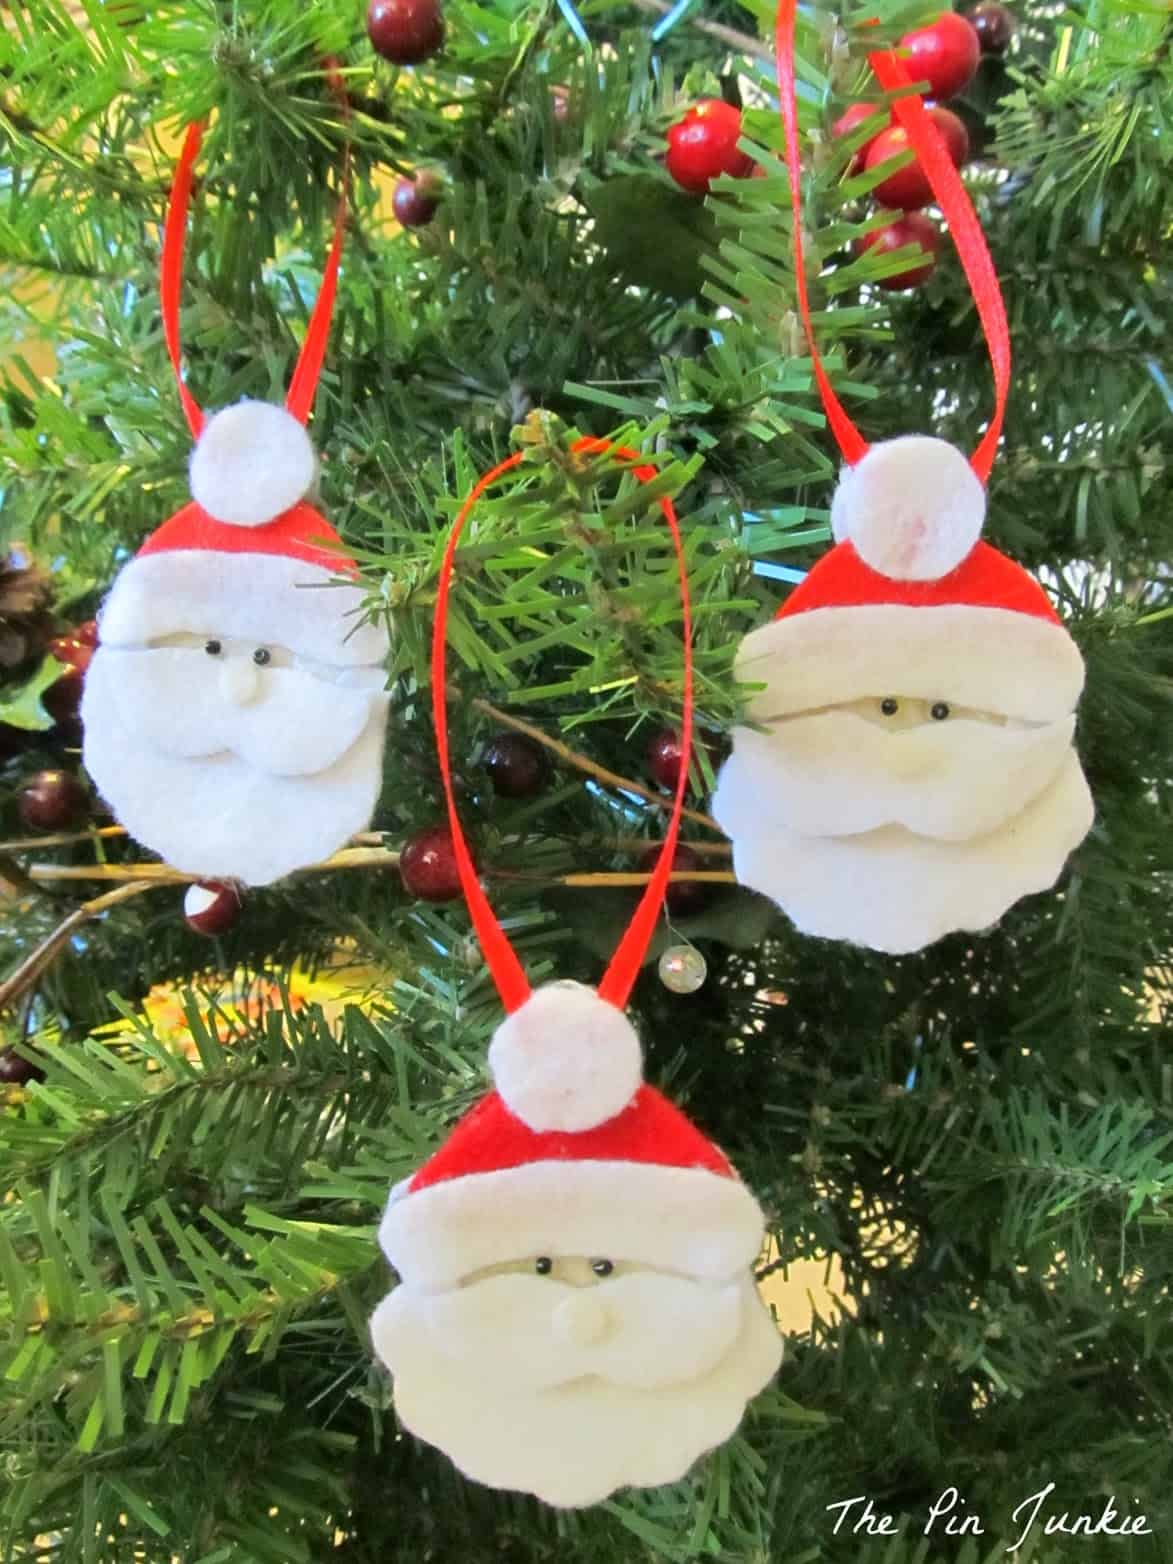 15 DIY Felt Christmas Ornaments To Make With The Kids